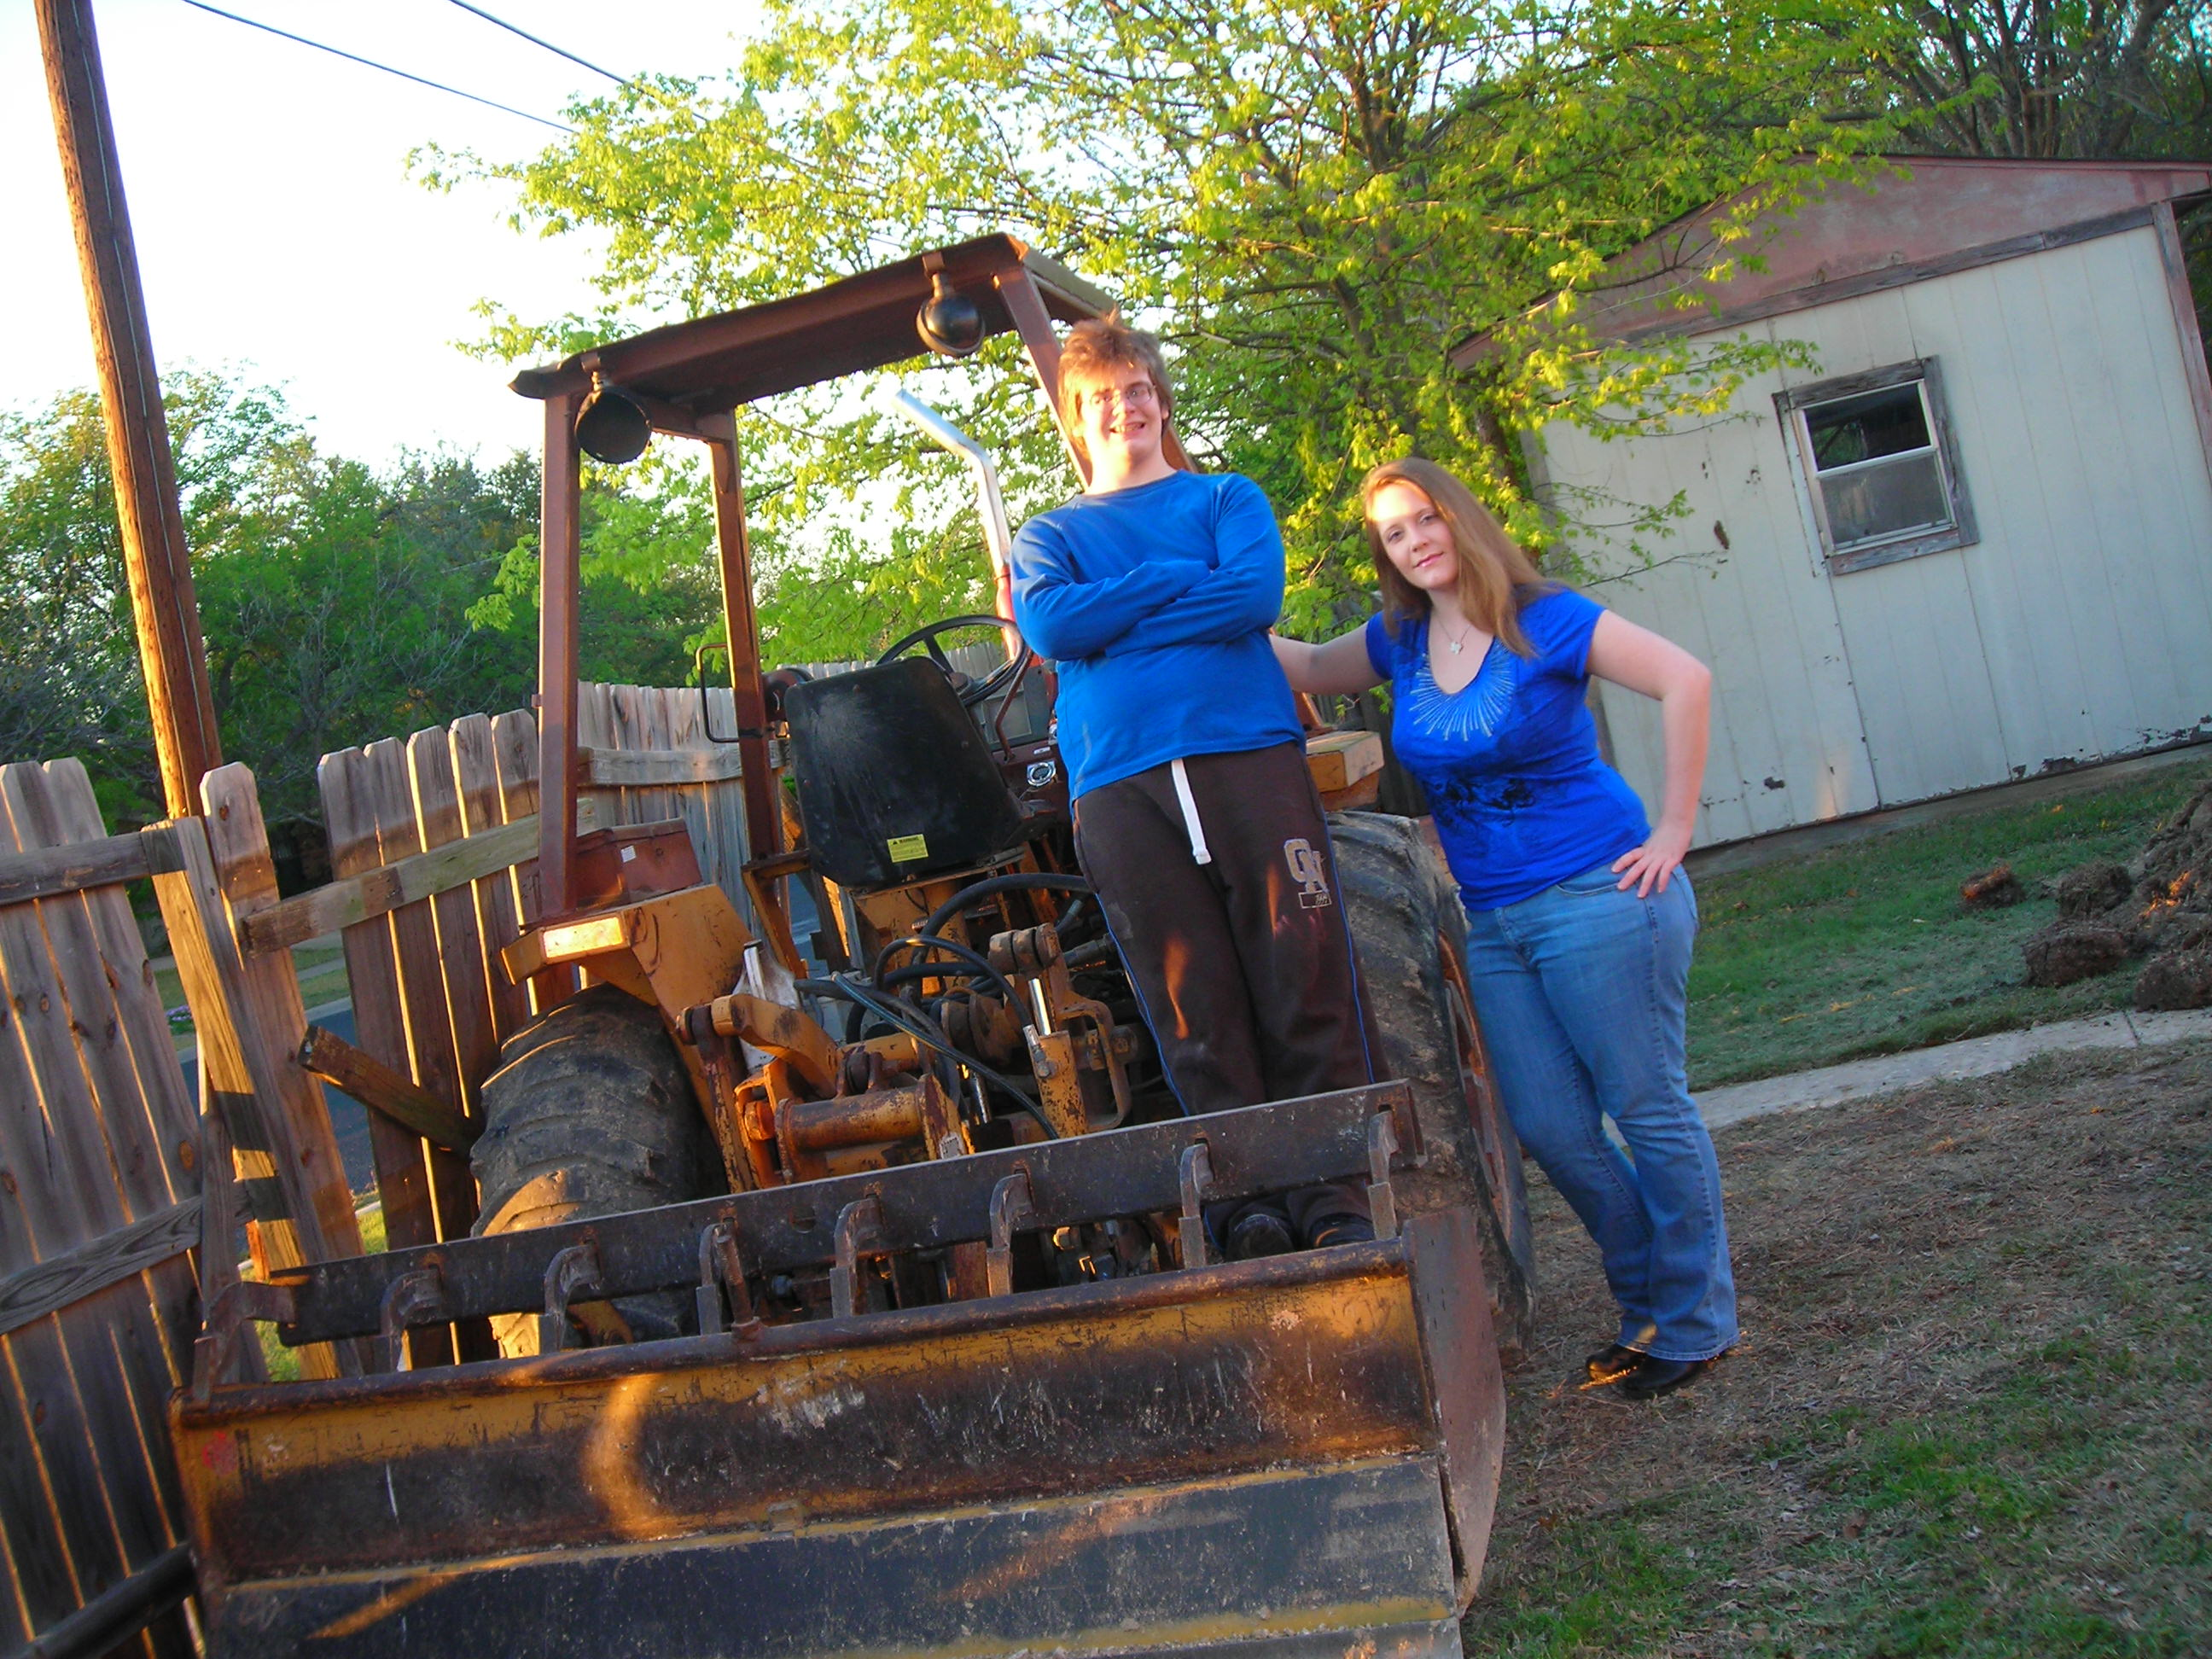 matt and tara horsing around on the heavy equipment ... when the crew's away, the mice will play!